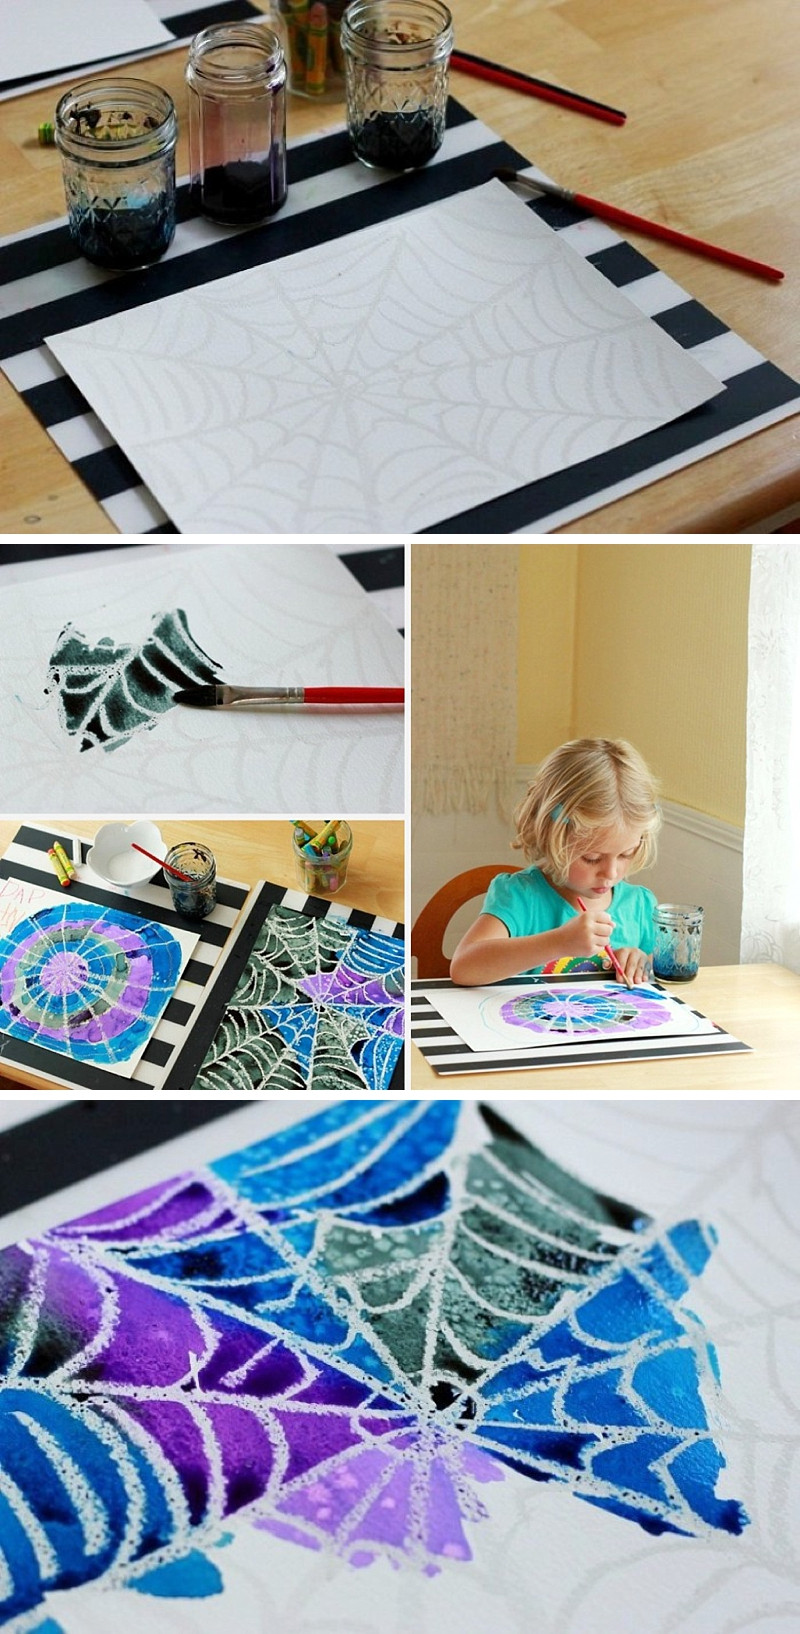 Best ideas about Art Projects Kids . Save or Pin Spider Web Art Project A Simple and Beautiful Now.